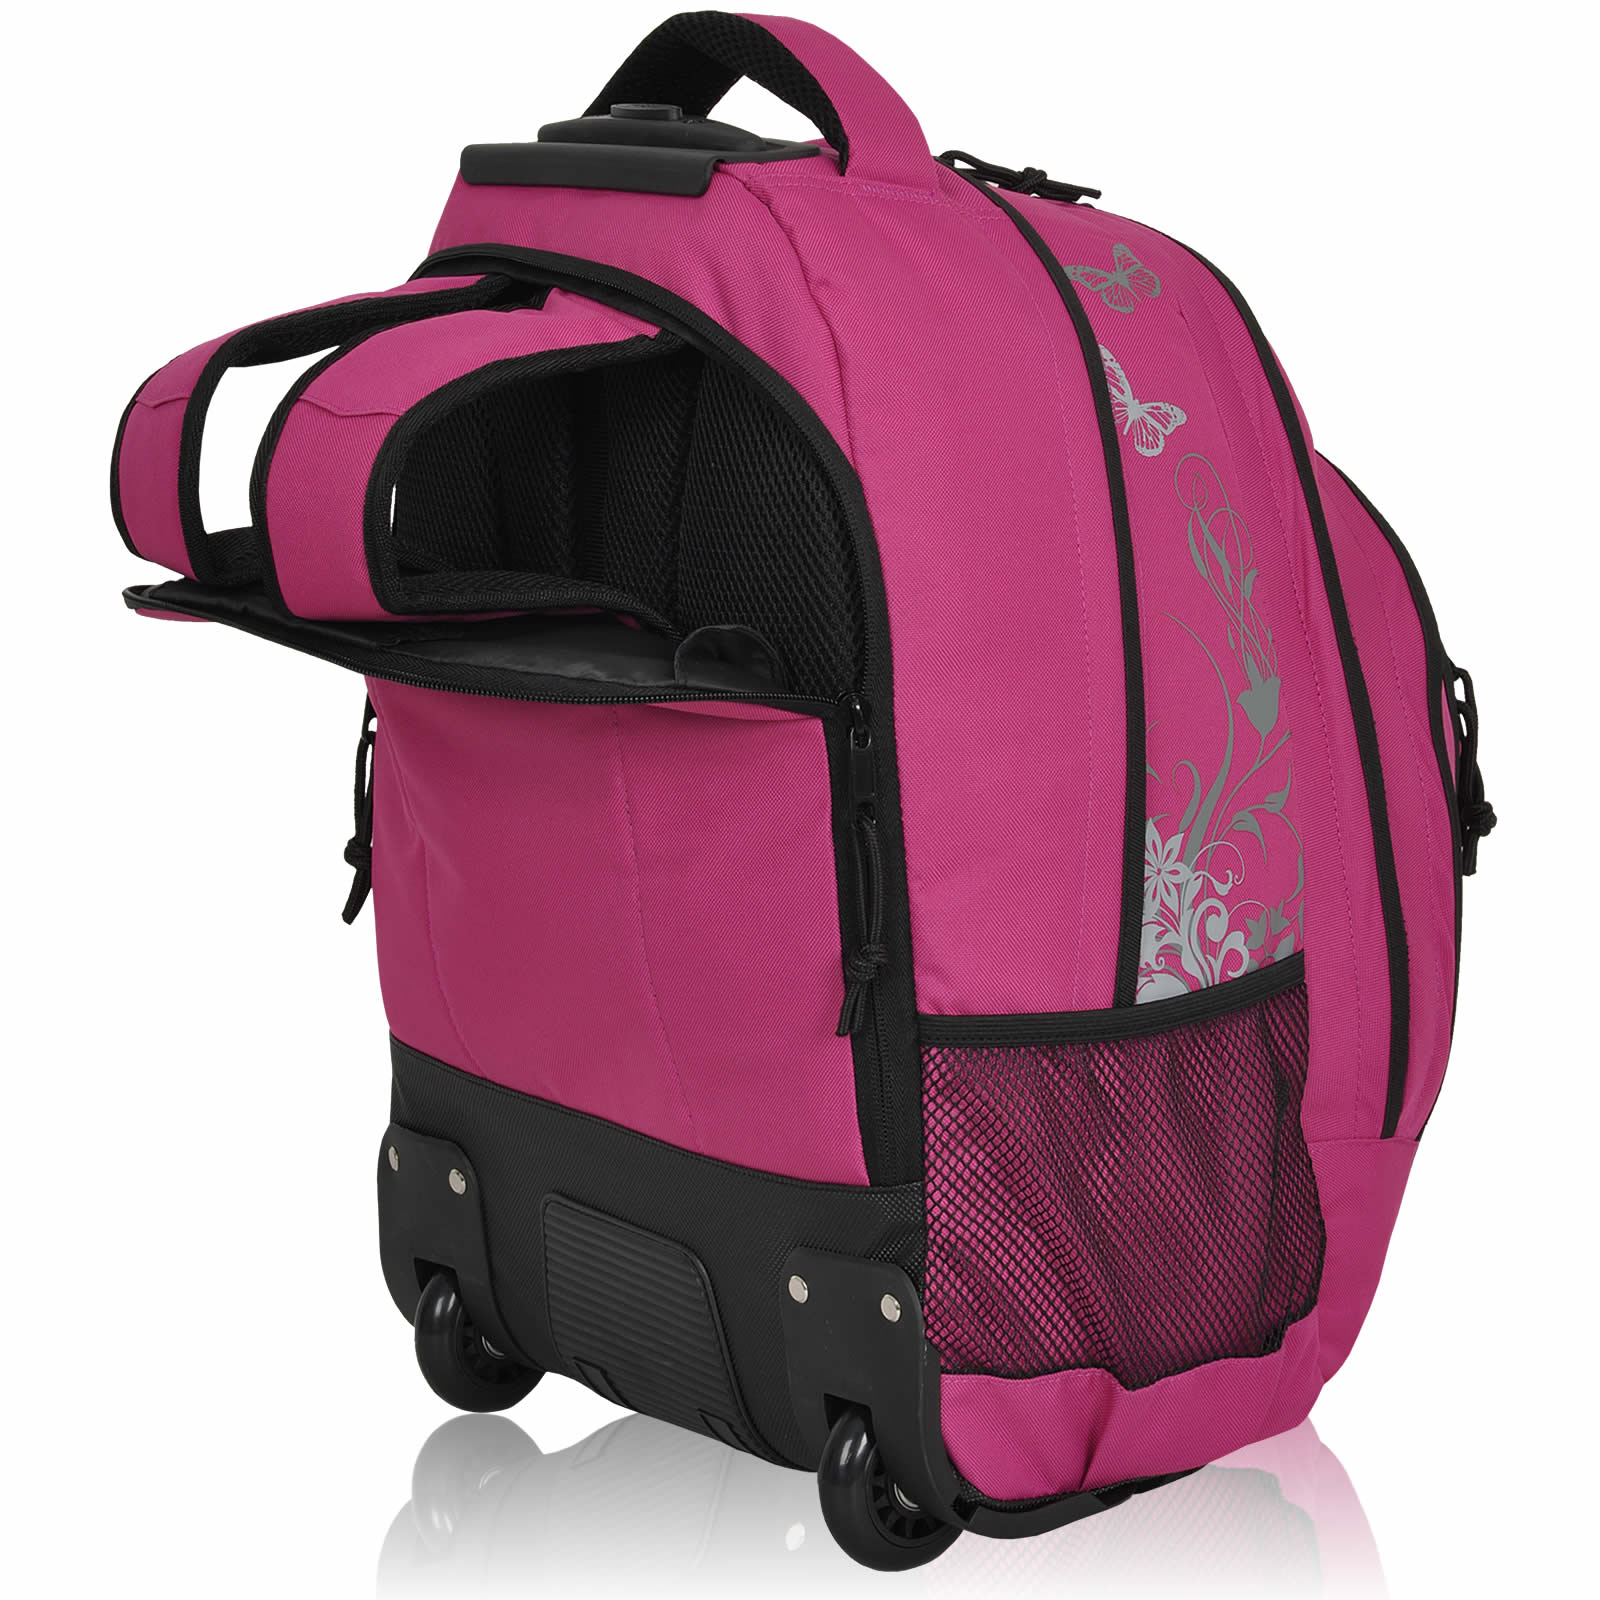 schulranzen trolley 3t set butterfly ranzen keanu schulrucksack trolley pink ebay. Black Bedroom Furniture Sets. Home Design Ideas